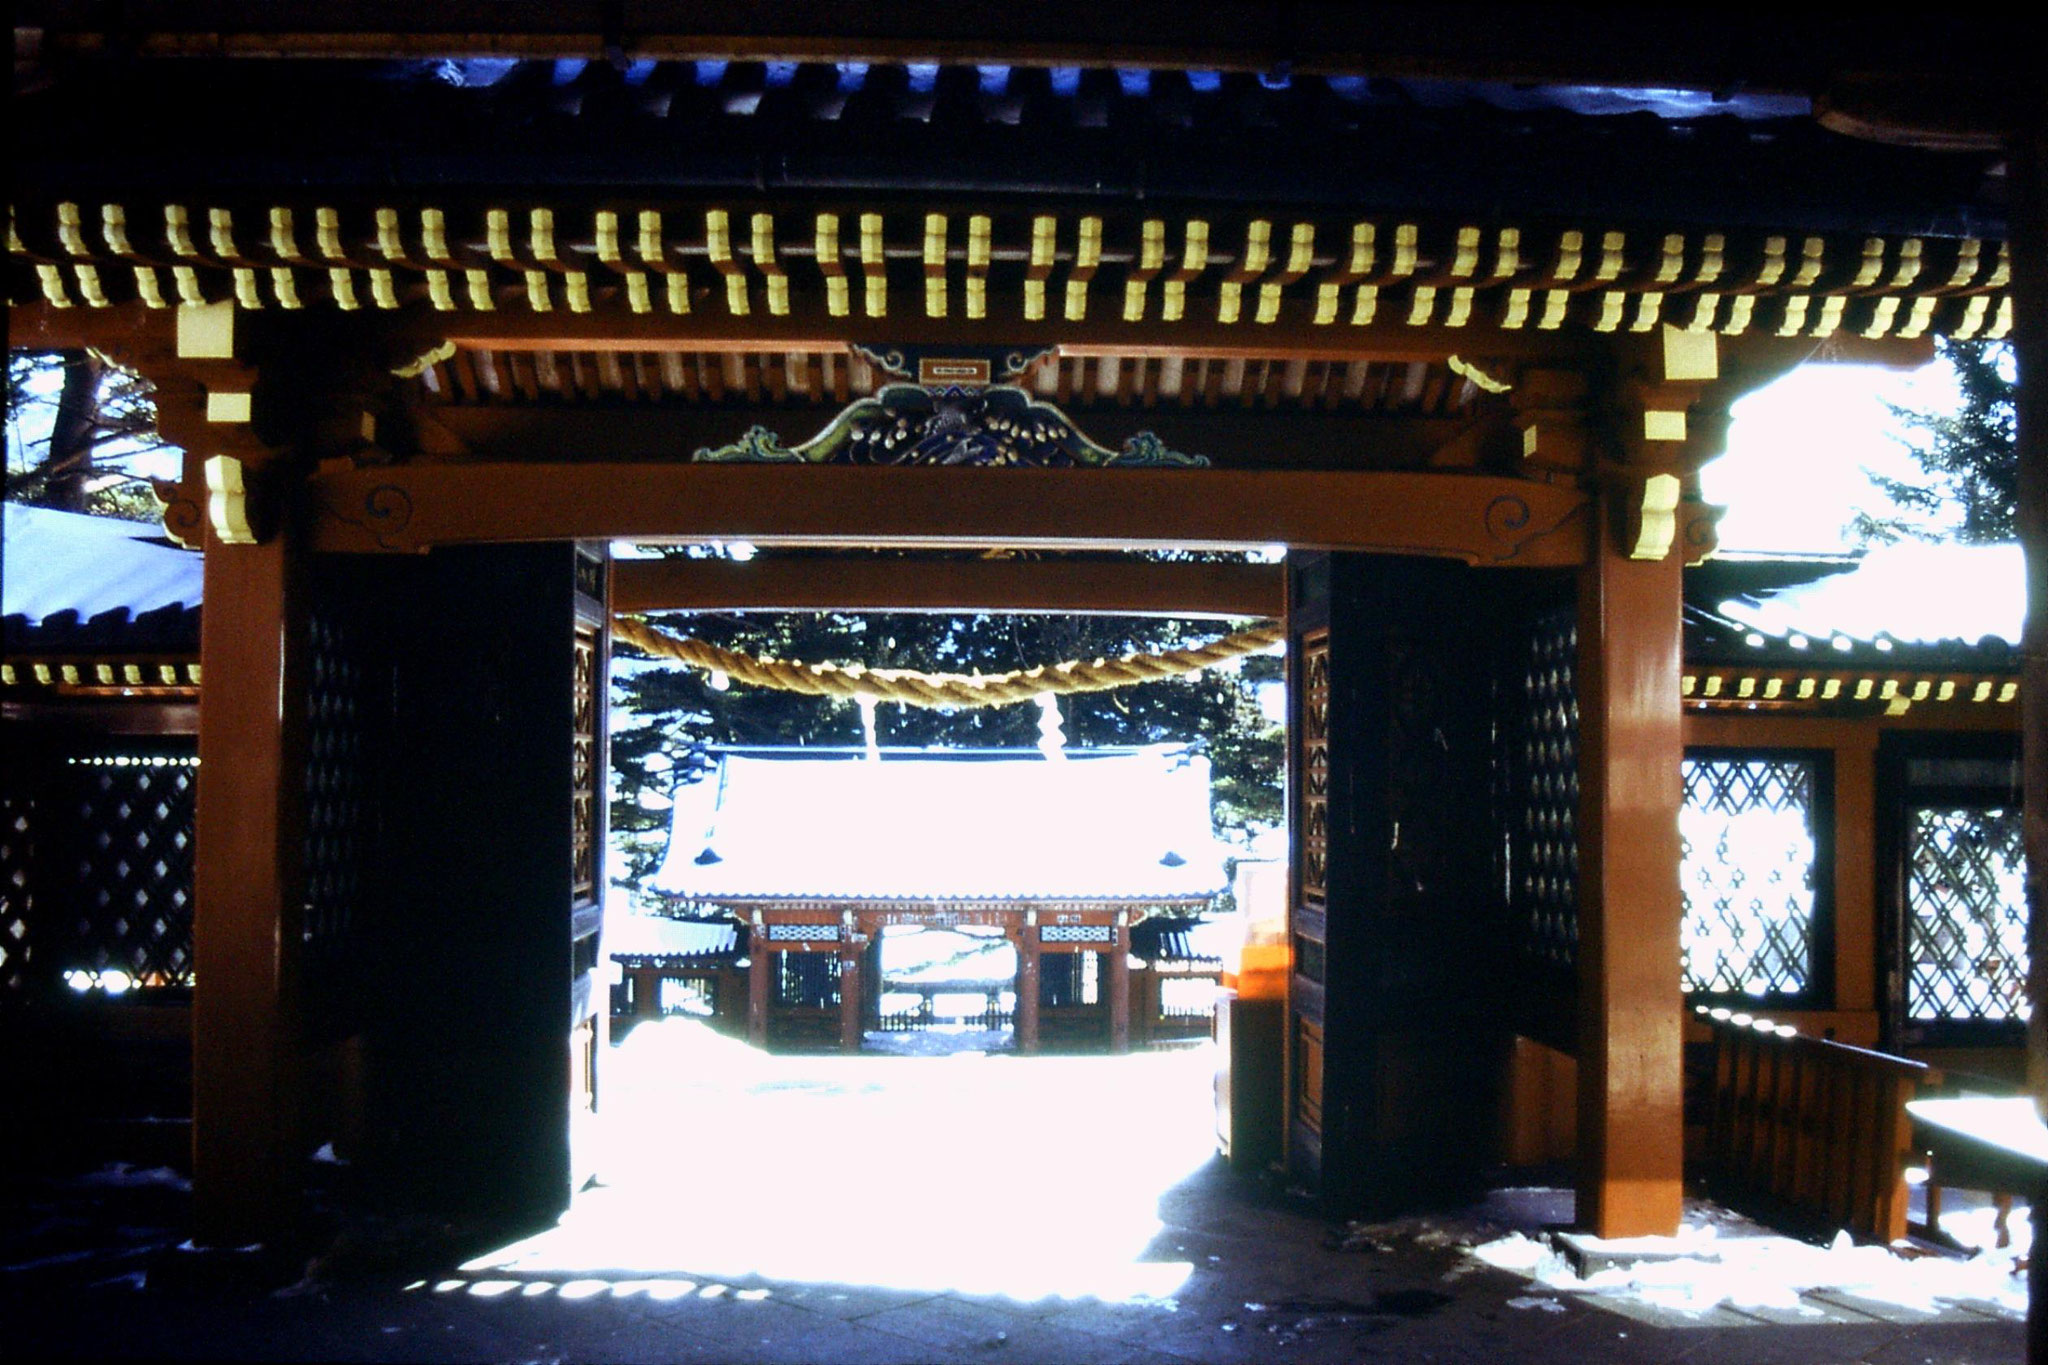 30/1/1989: 6: Futarasan shrine